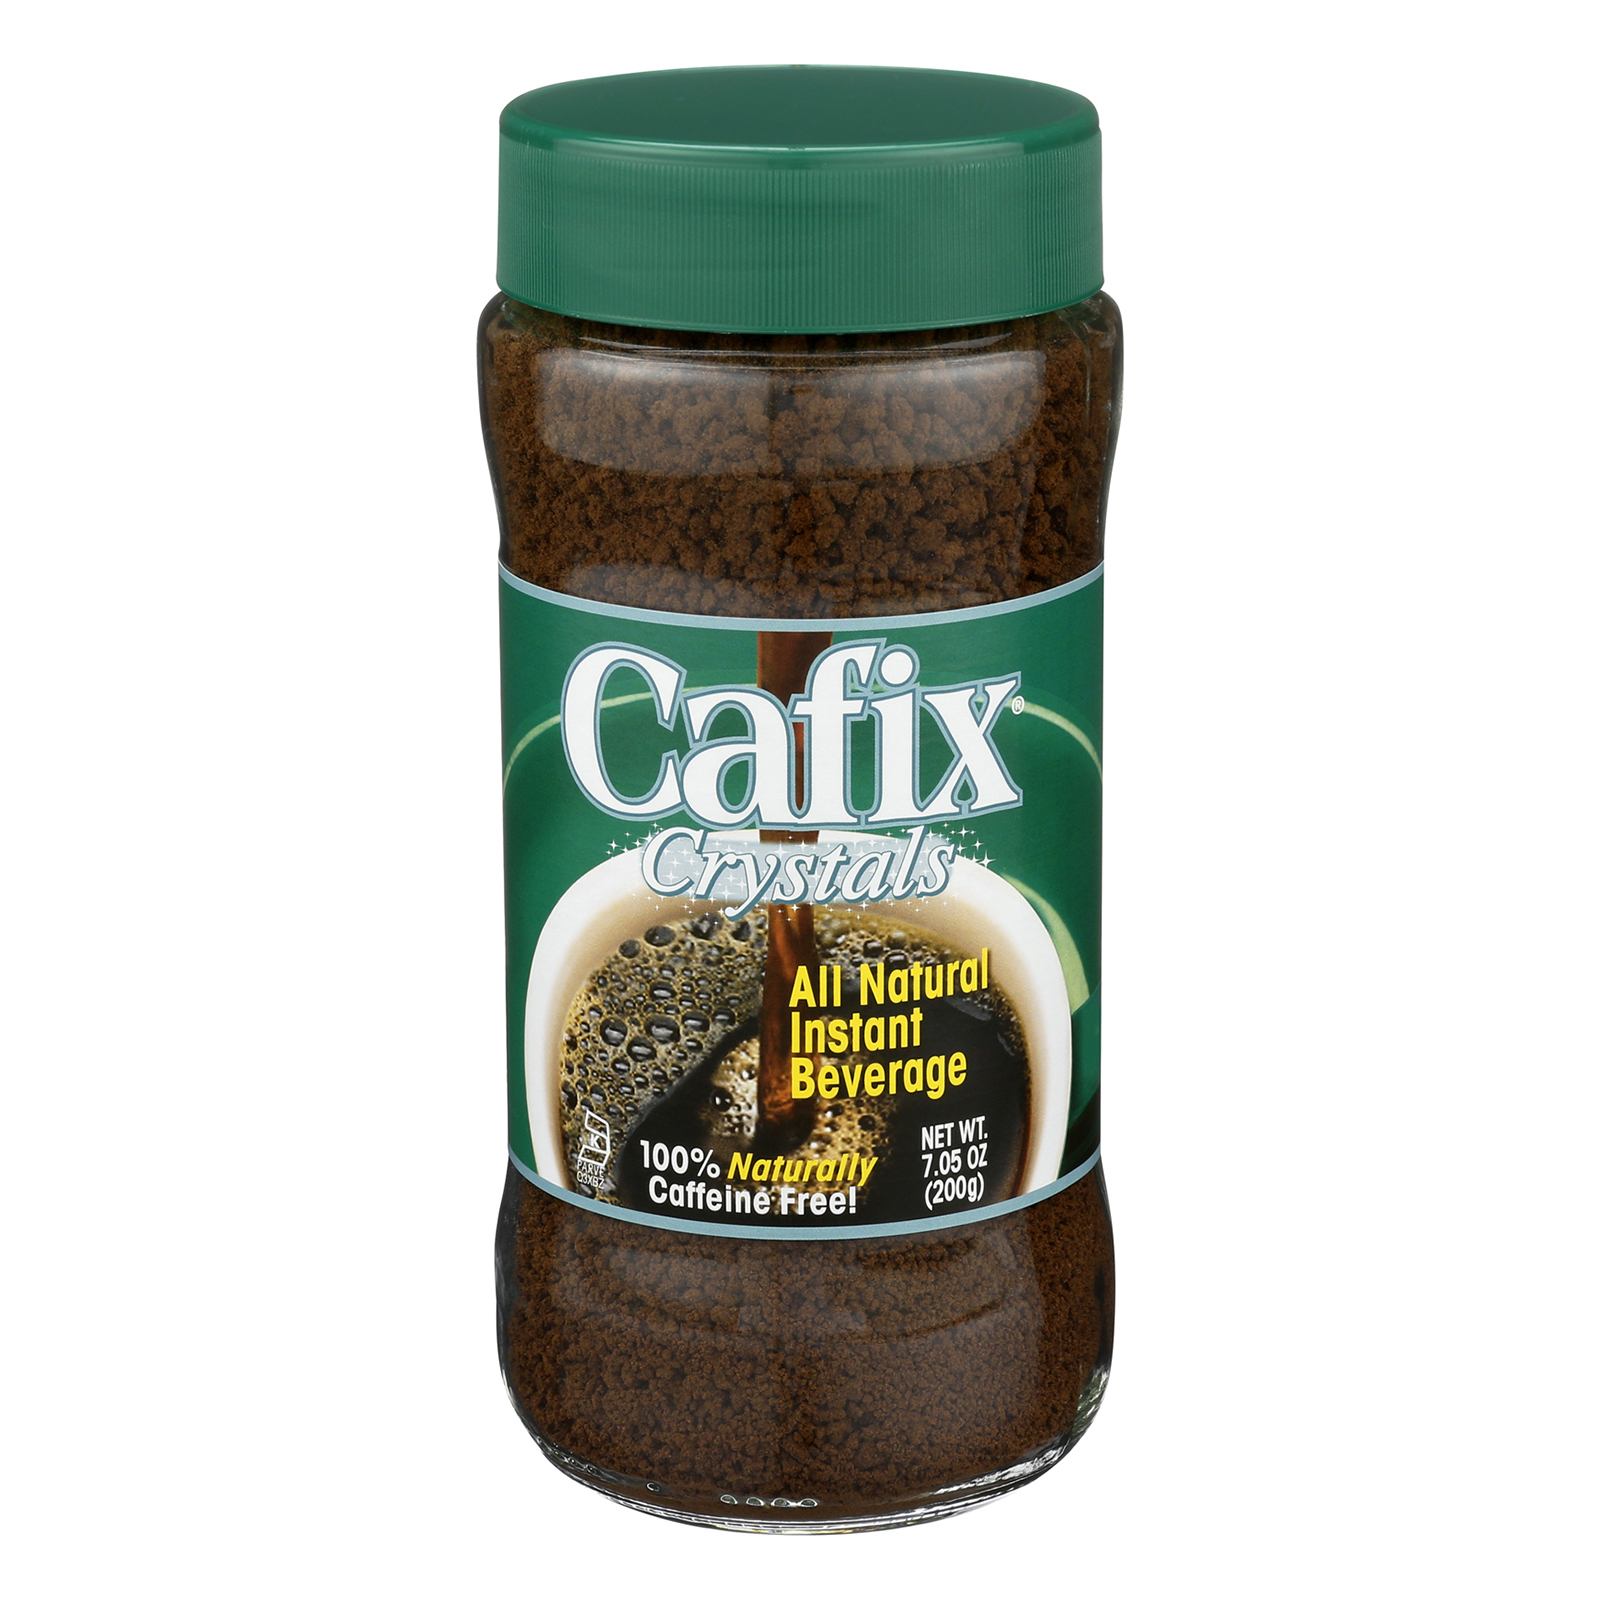 Cafix All Natural Instant Beverage Crystals - Caffeine Free - Case of 12 - 7 oz.